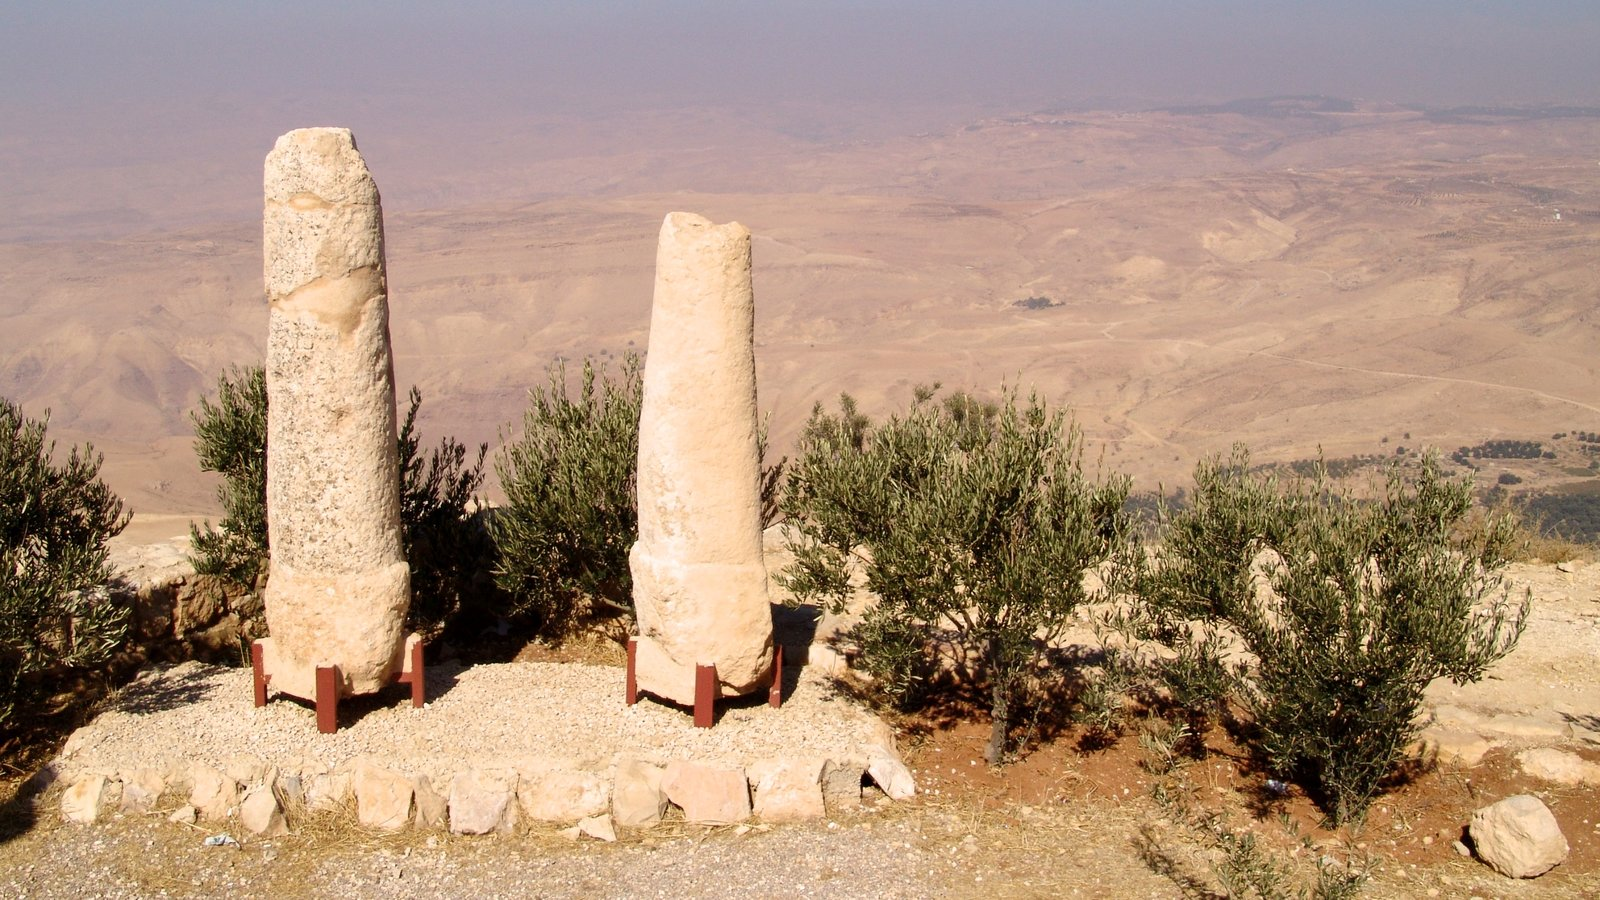 Mount Nebo which includes heritage elements and landscape views